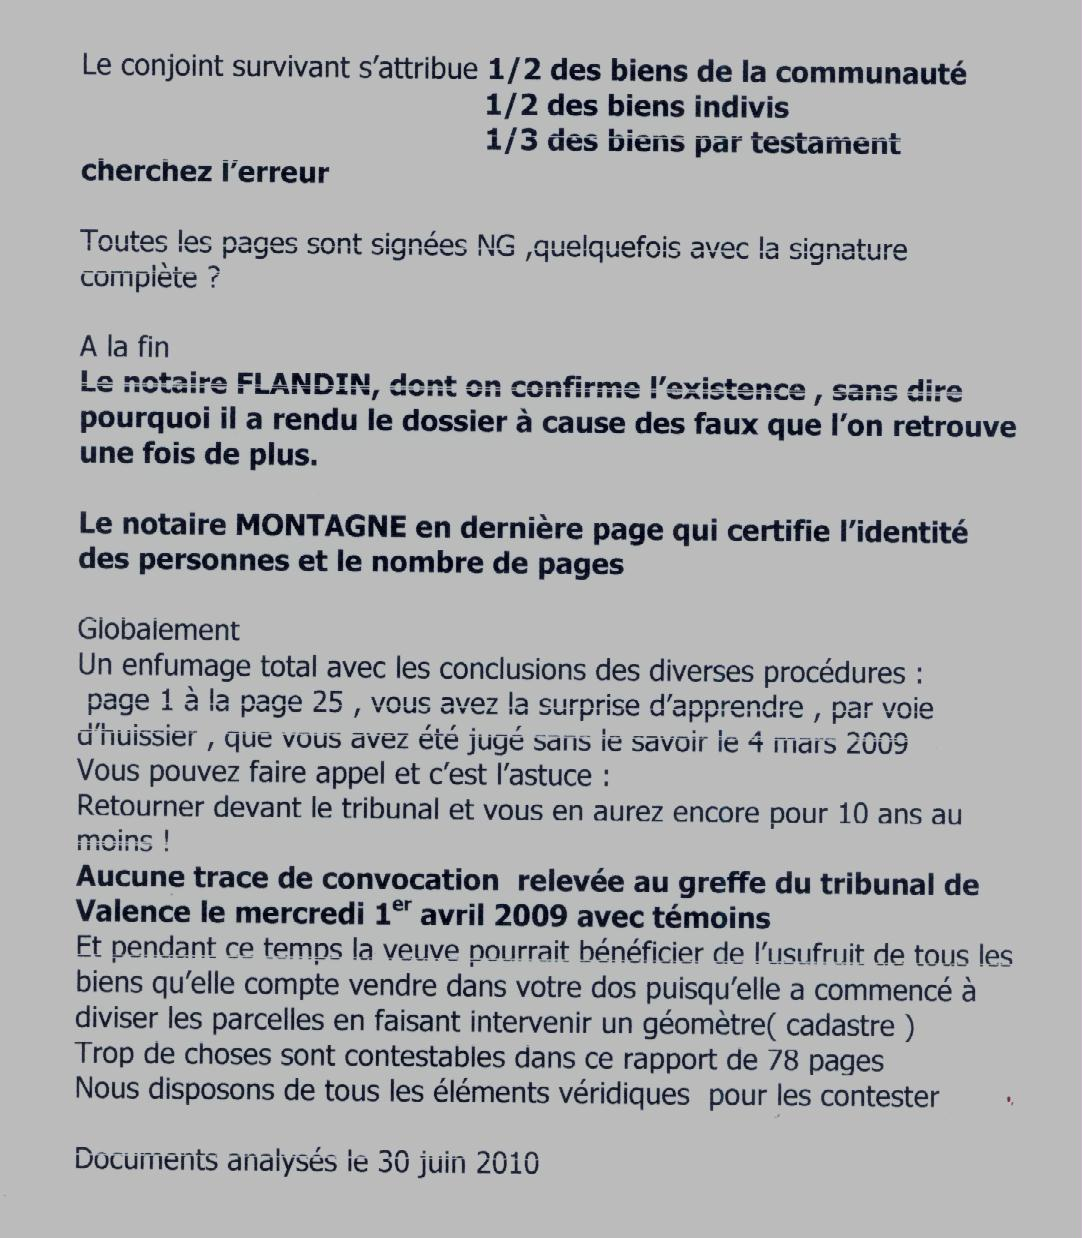 Analyse du 30/6/10 - page 2